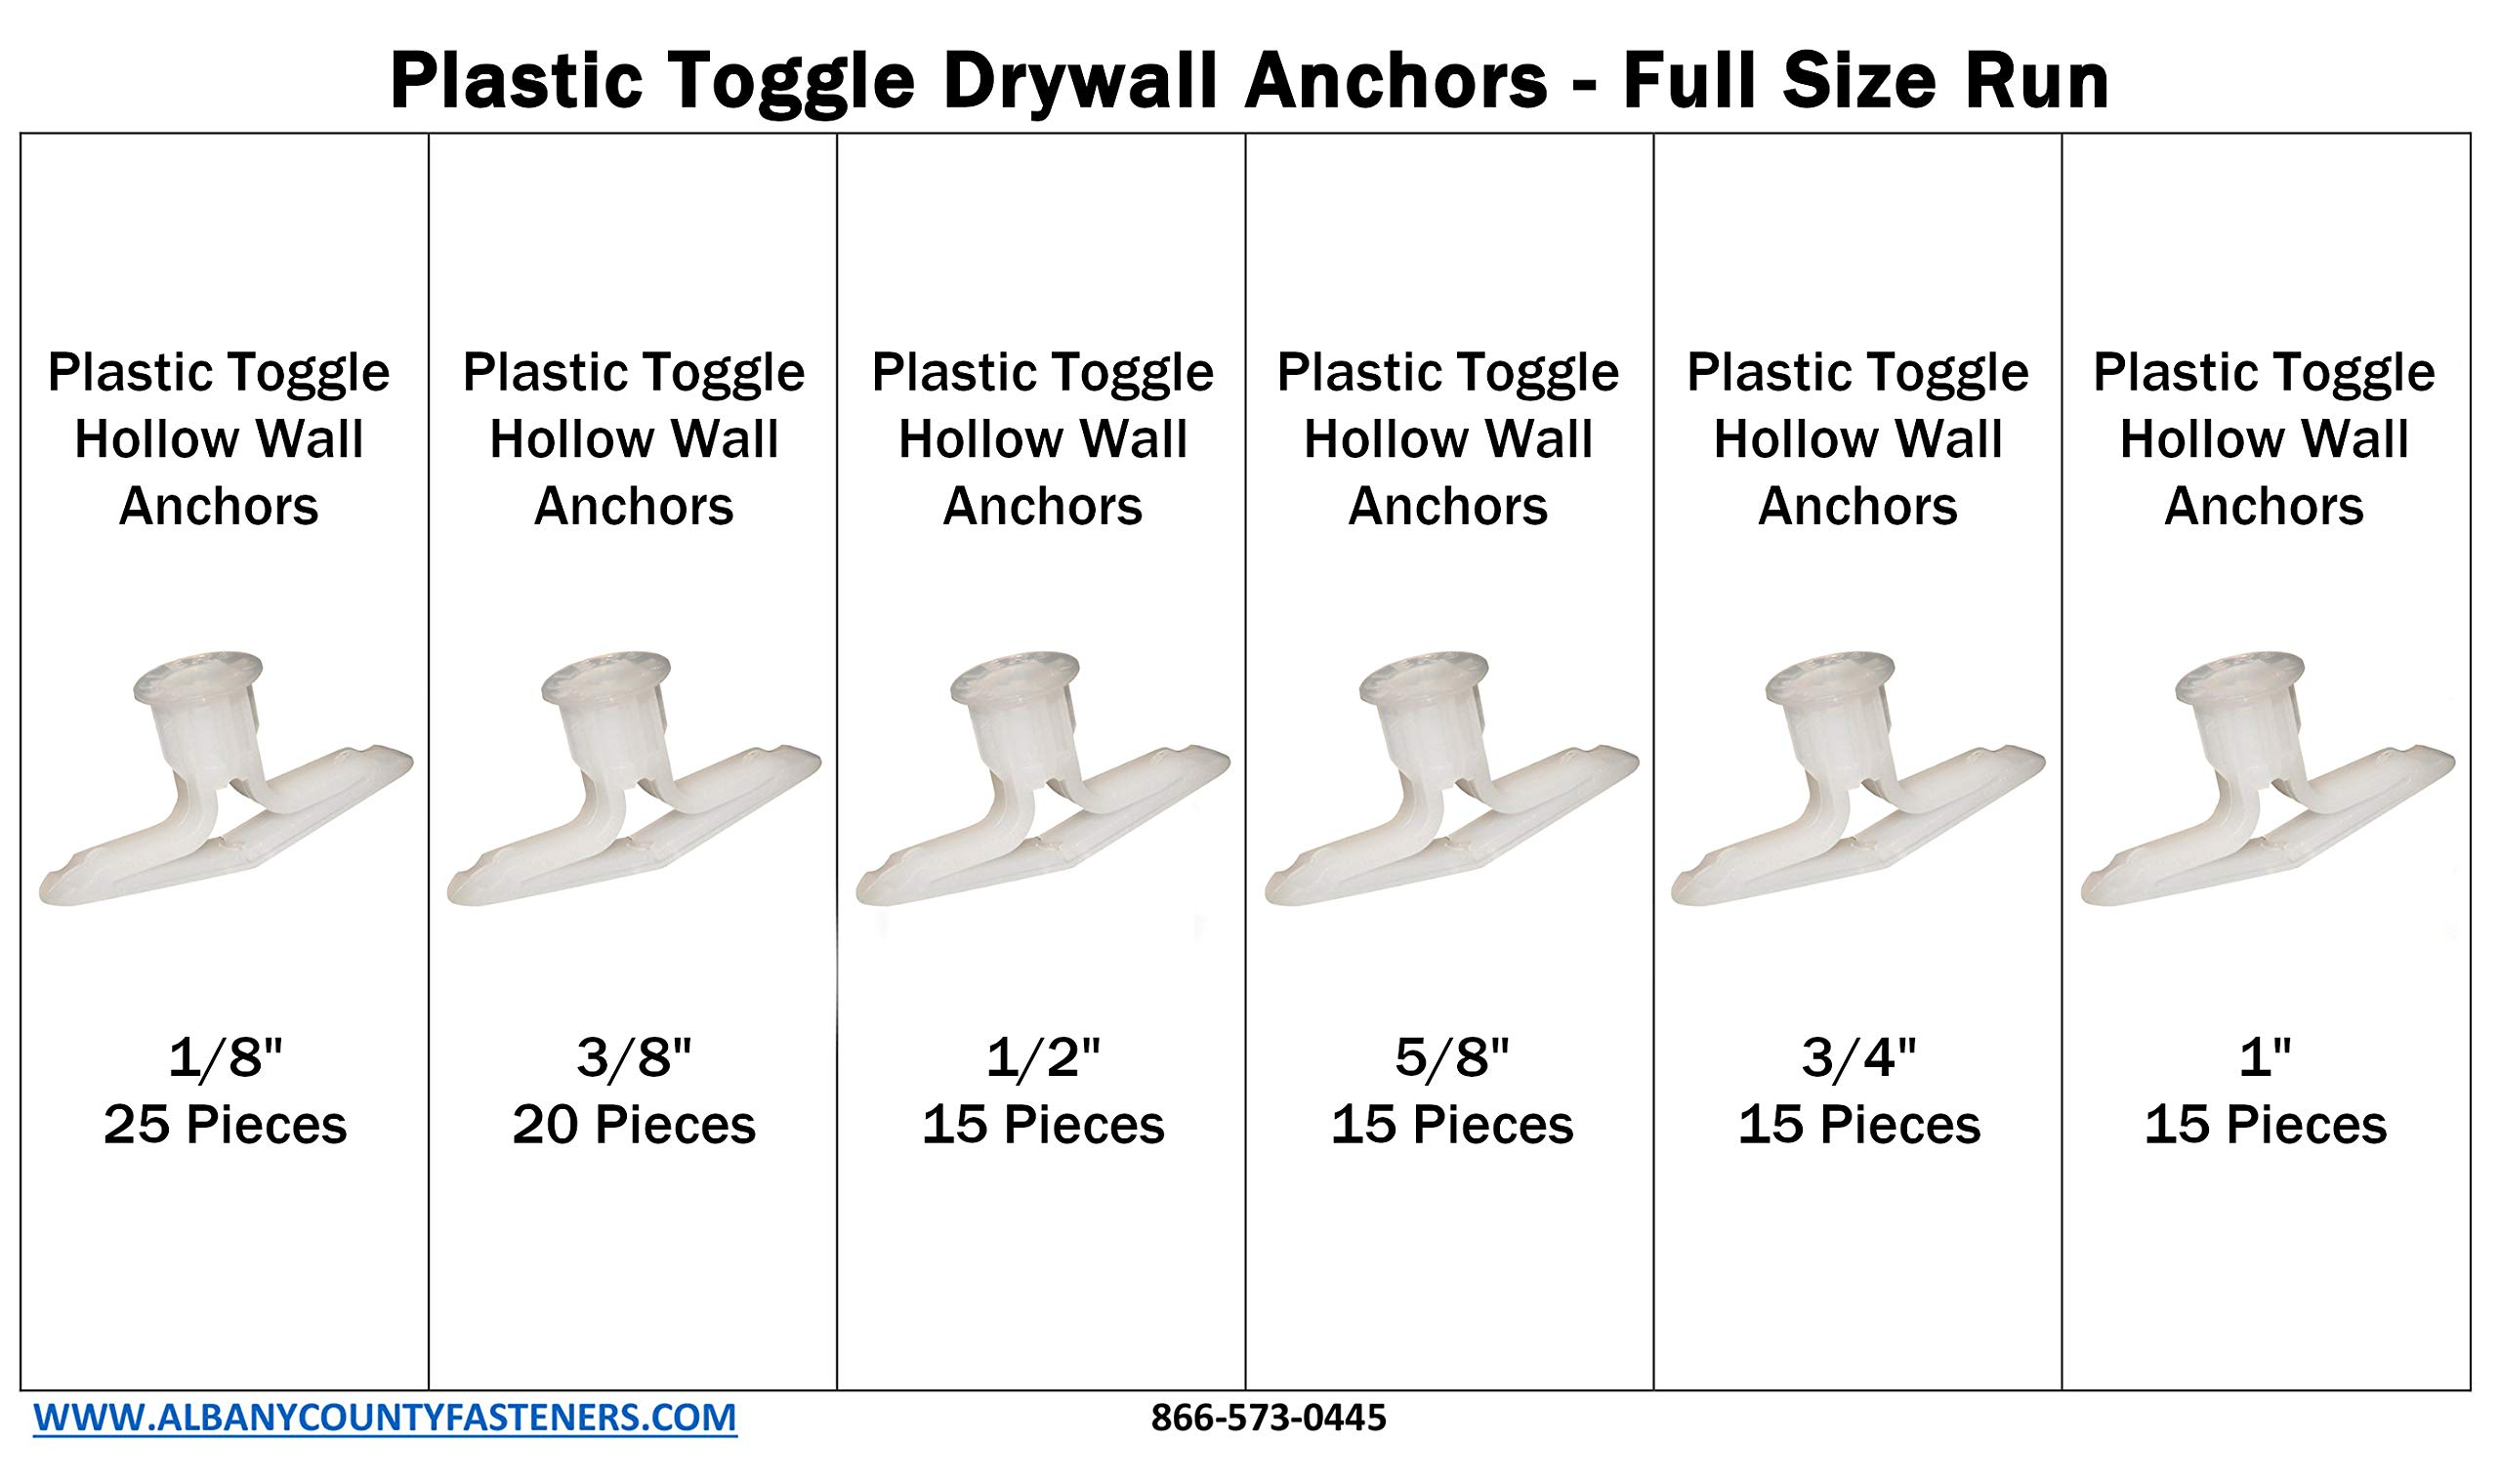 Plastic Toggle Drywall Anchors Size Run Assortment Kit 1/8 Through 1 inch Hollow Wall Anchors